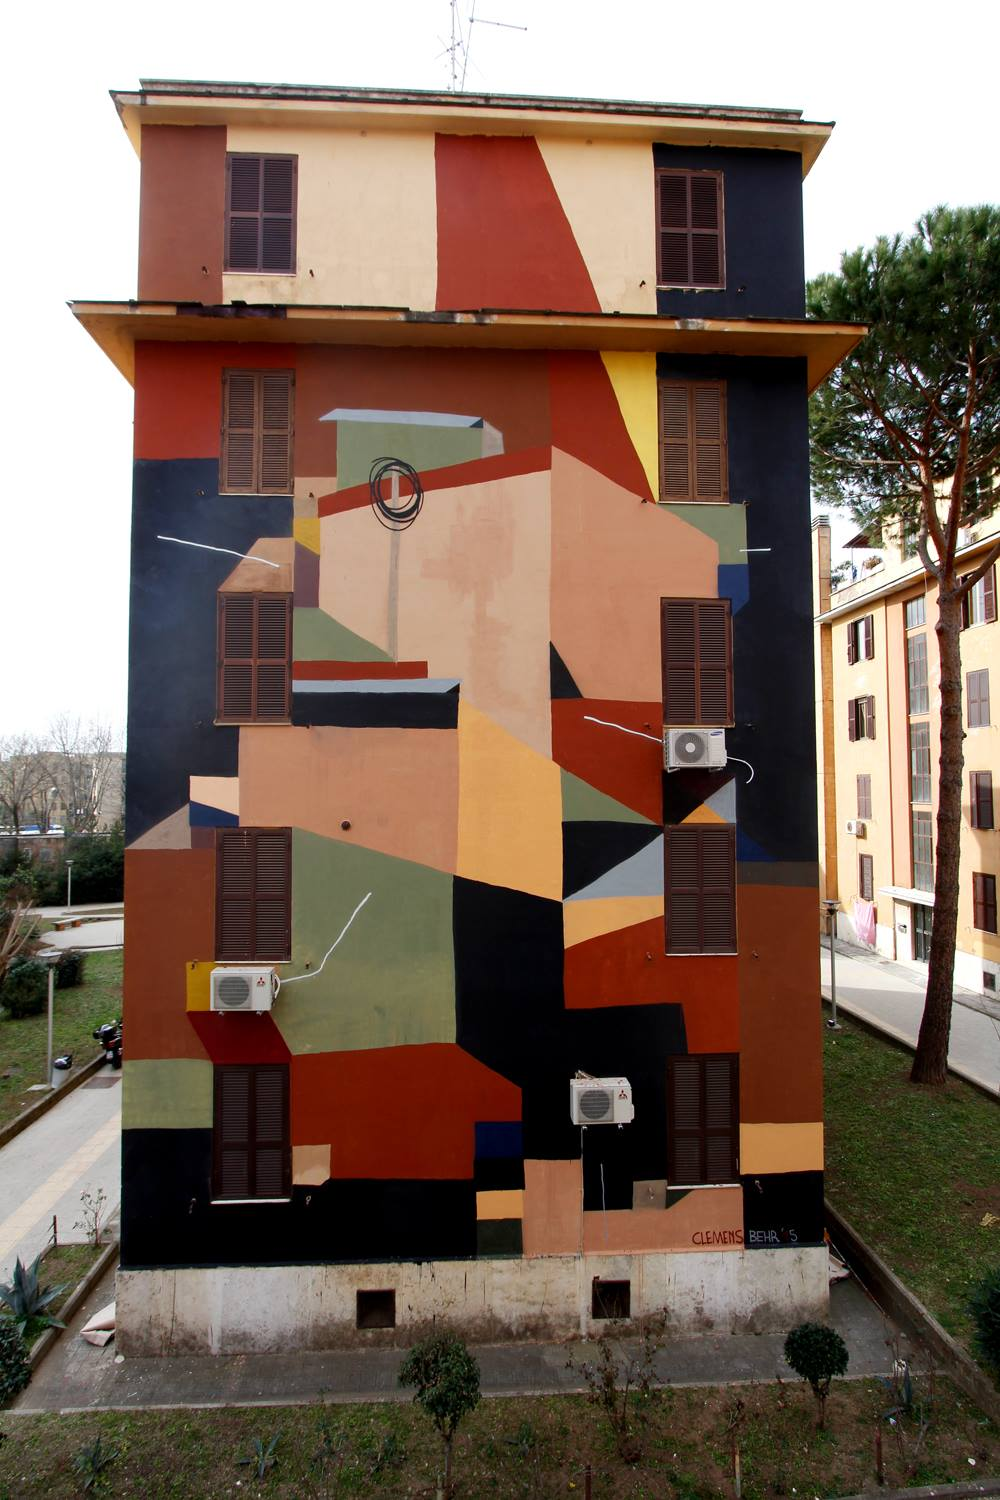 clemens-behr-new-mural-in-tor-marancia-rome-04